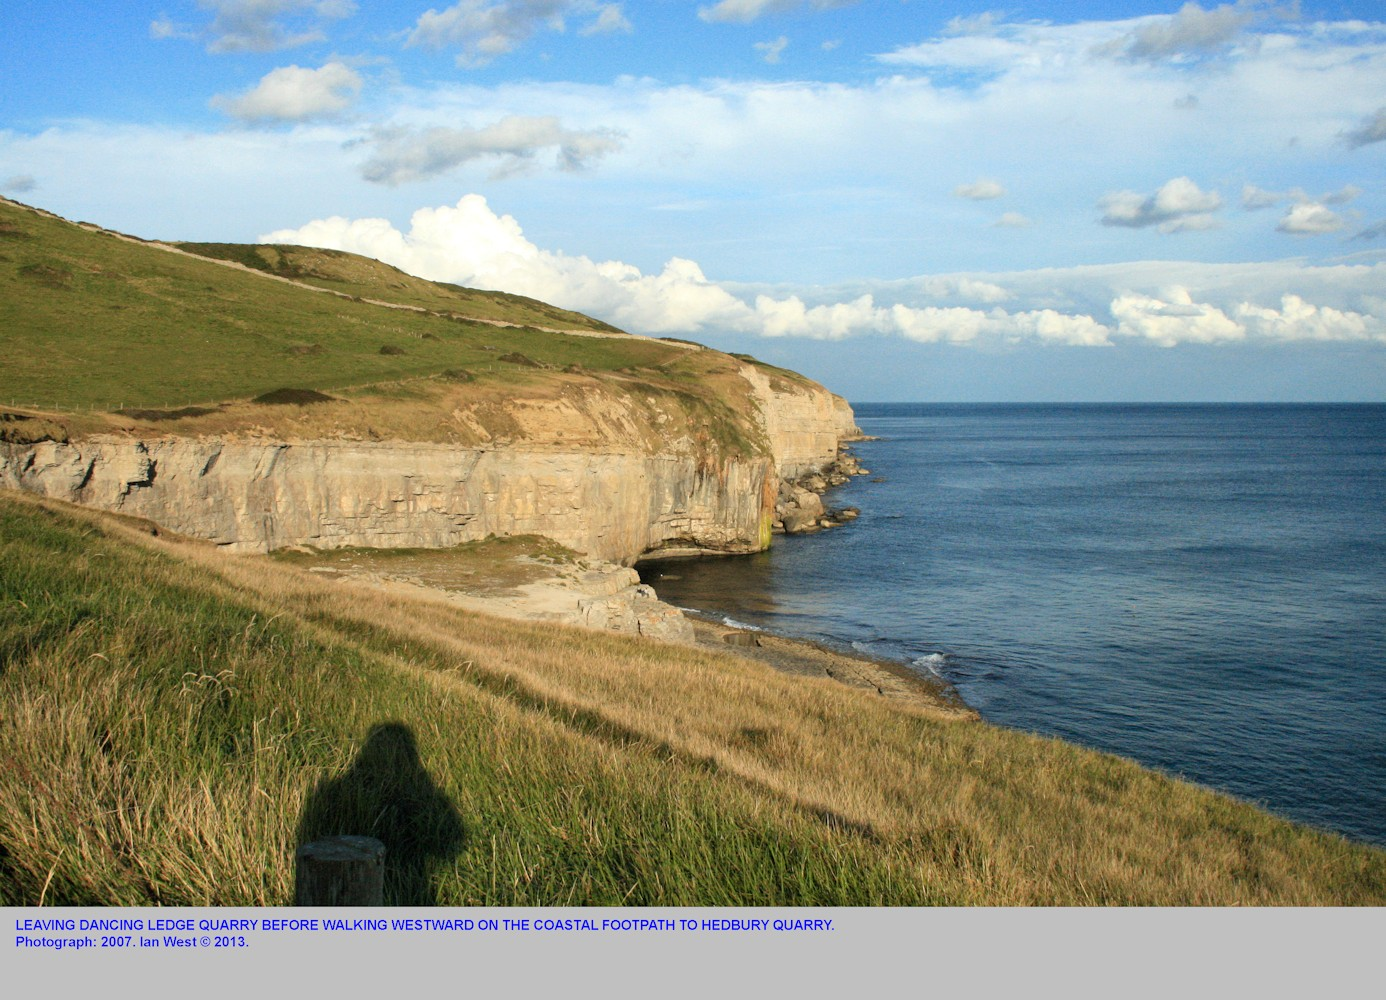 Leaving Dancing Ledge, near Swanage, Isle of Purbeck, Dorset, Jurassic Coast, and walking to Hedbury Quarry, further west